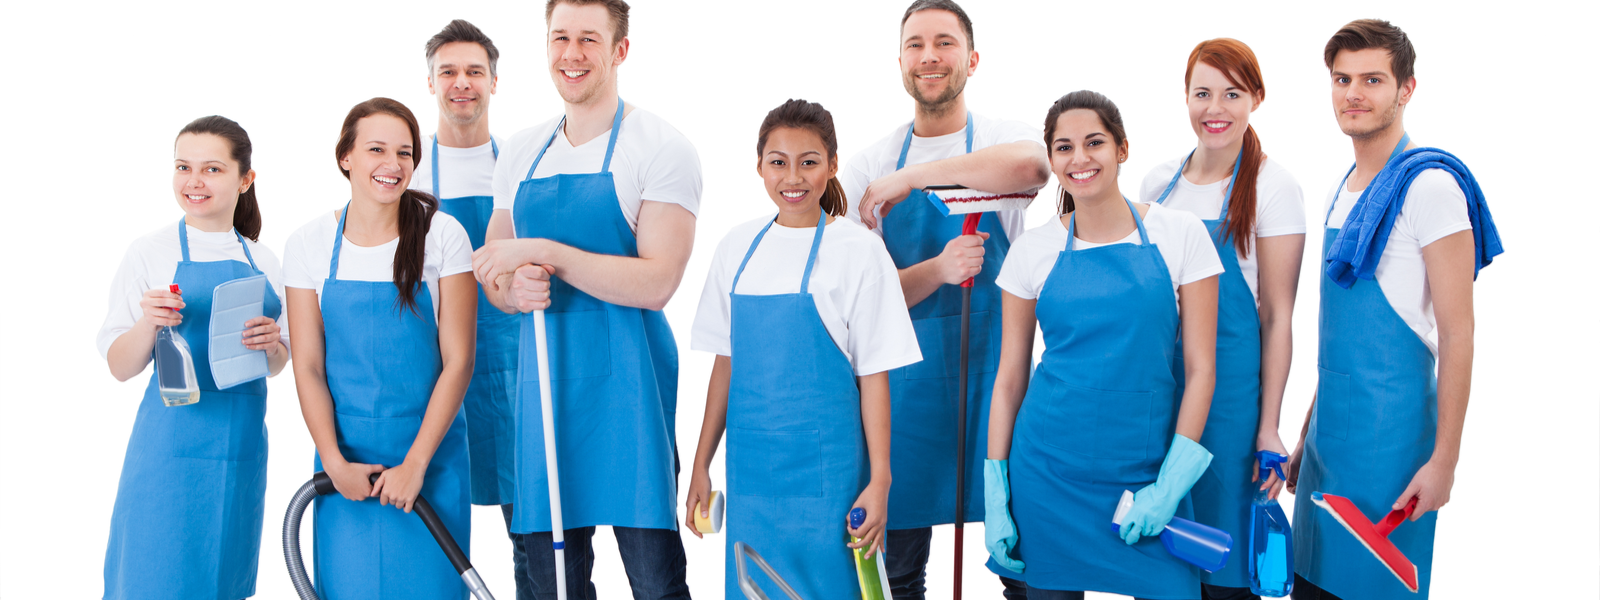 Janitorial Service Insurance Massachusetts